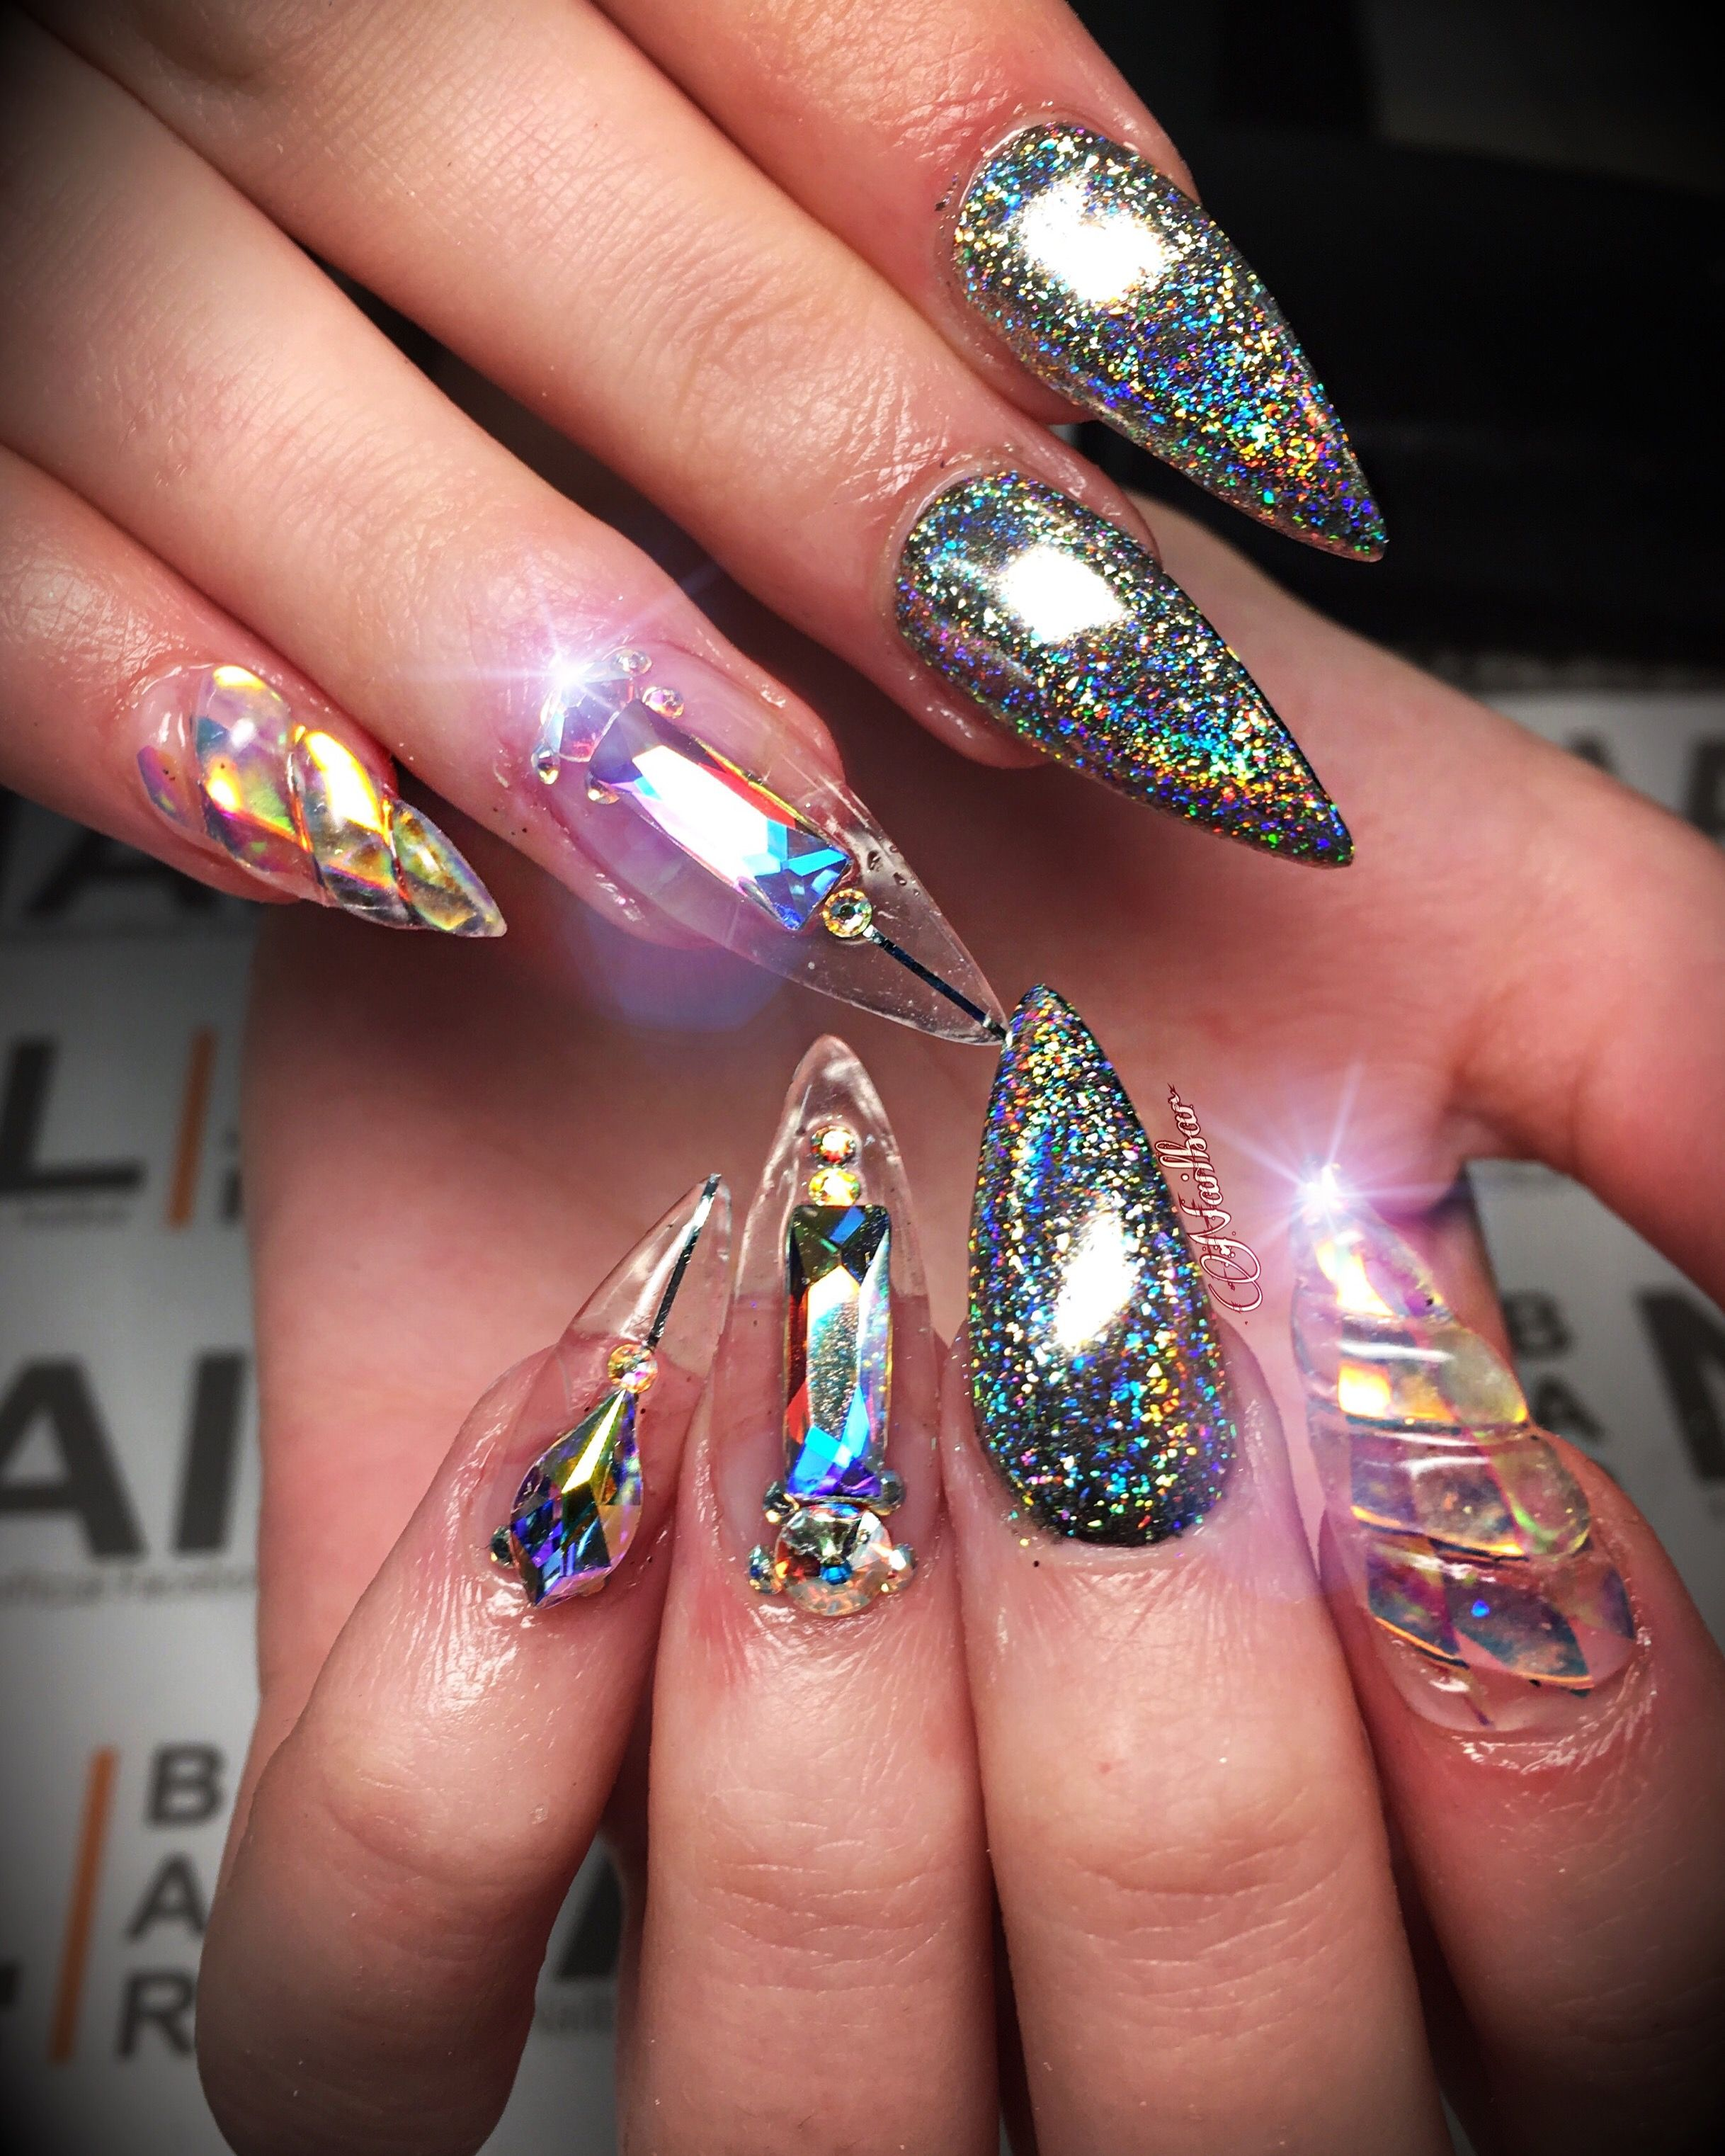 iFollow me for more beautiful nails! pinterest.com/hellowmysunshine ...